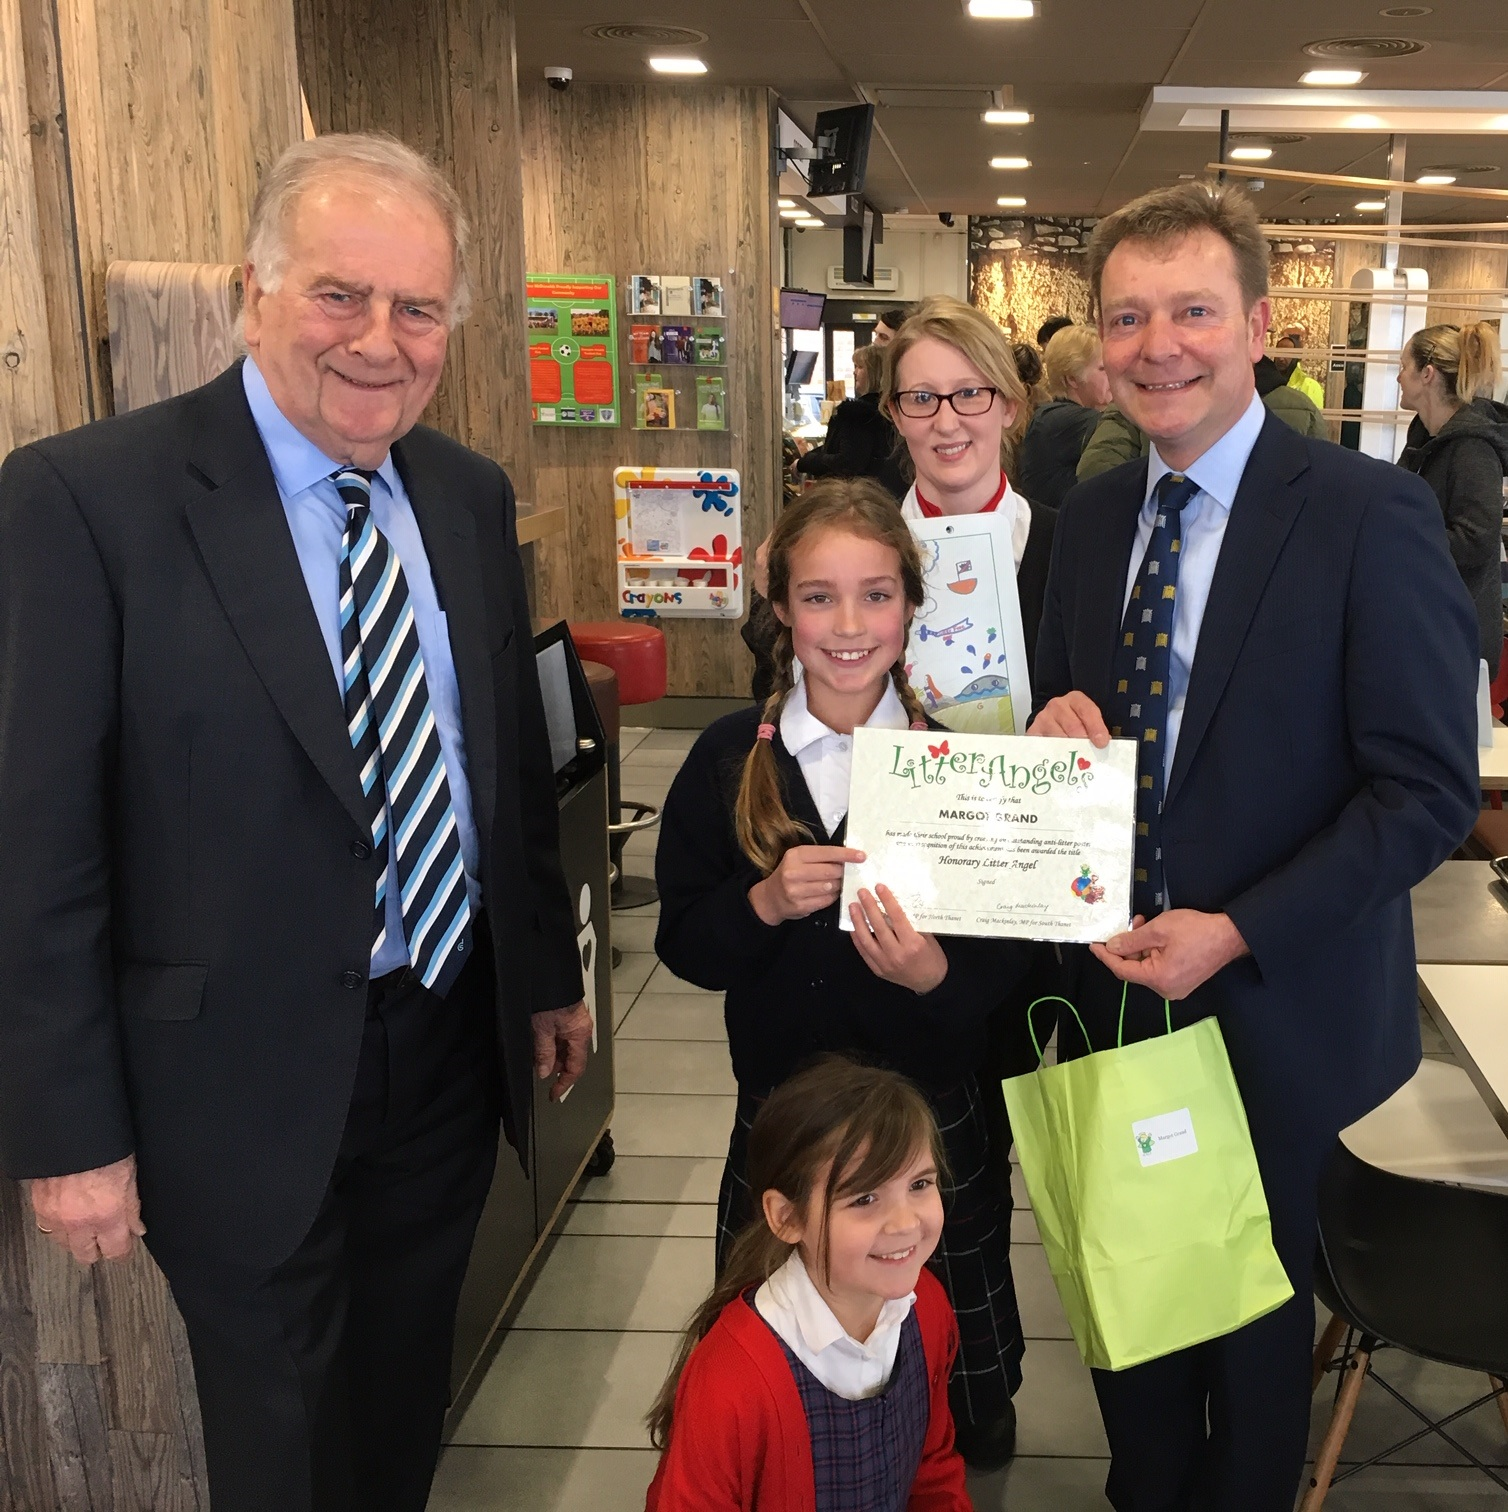 Sir Roger Gale and Craig with previous Litter Angel winner, Wellesley House Year 5 Pupil, Margot